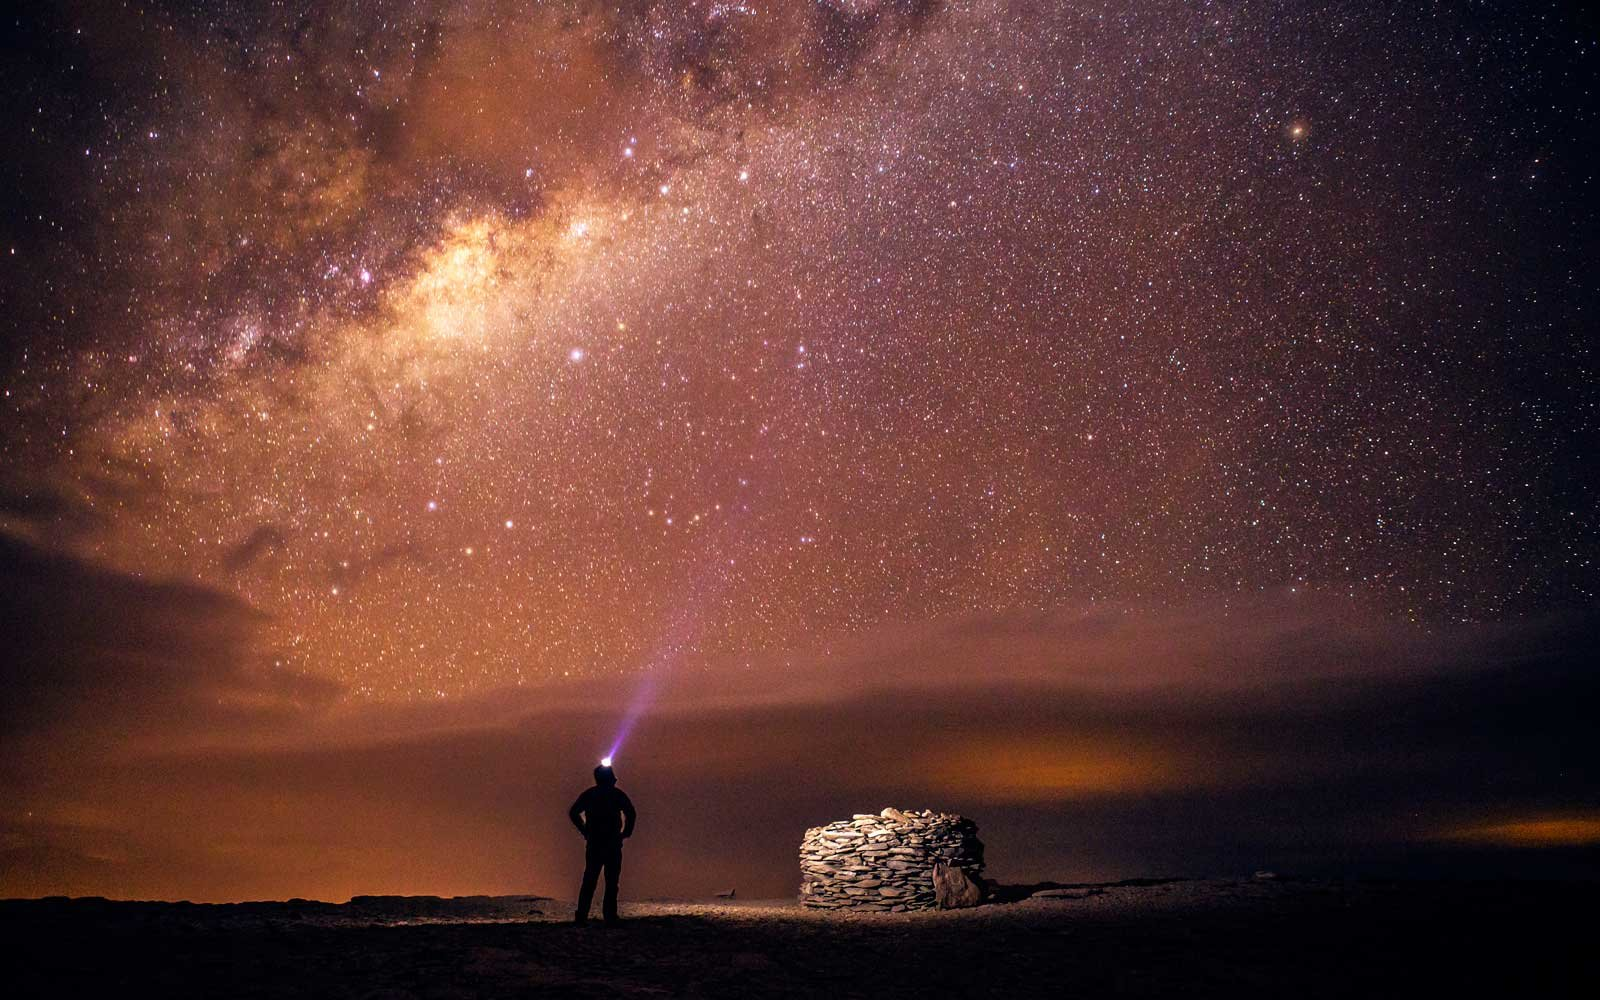 Stargazing in the deserts of Chile